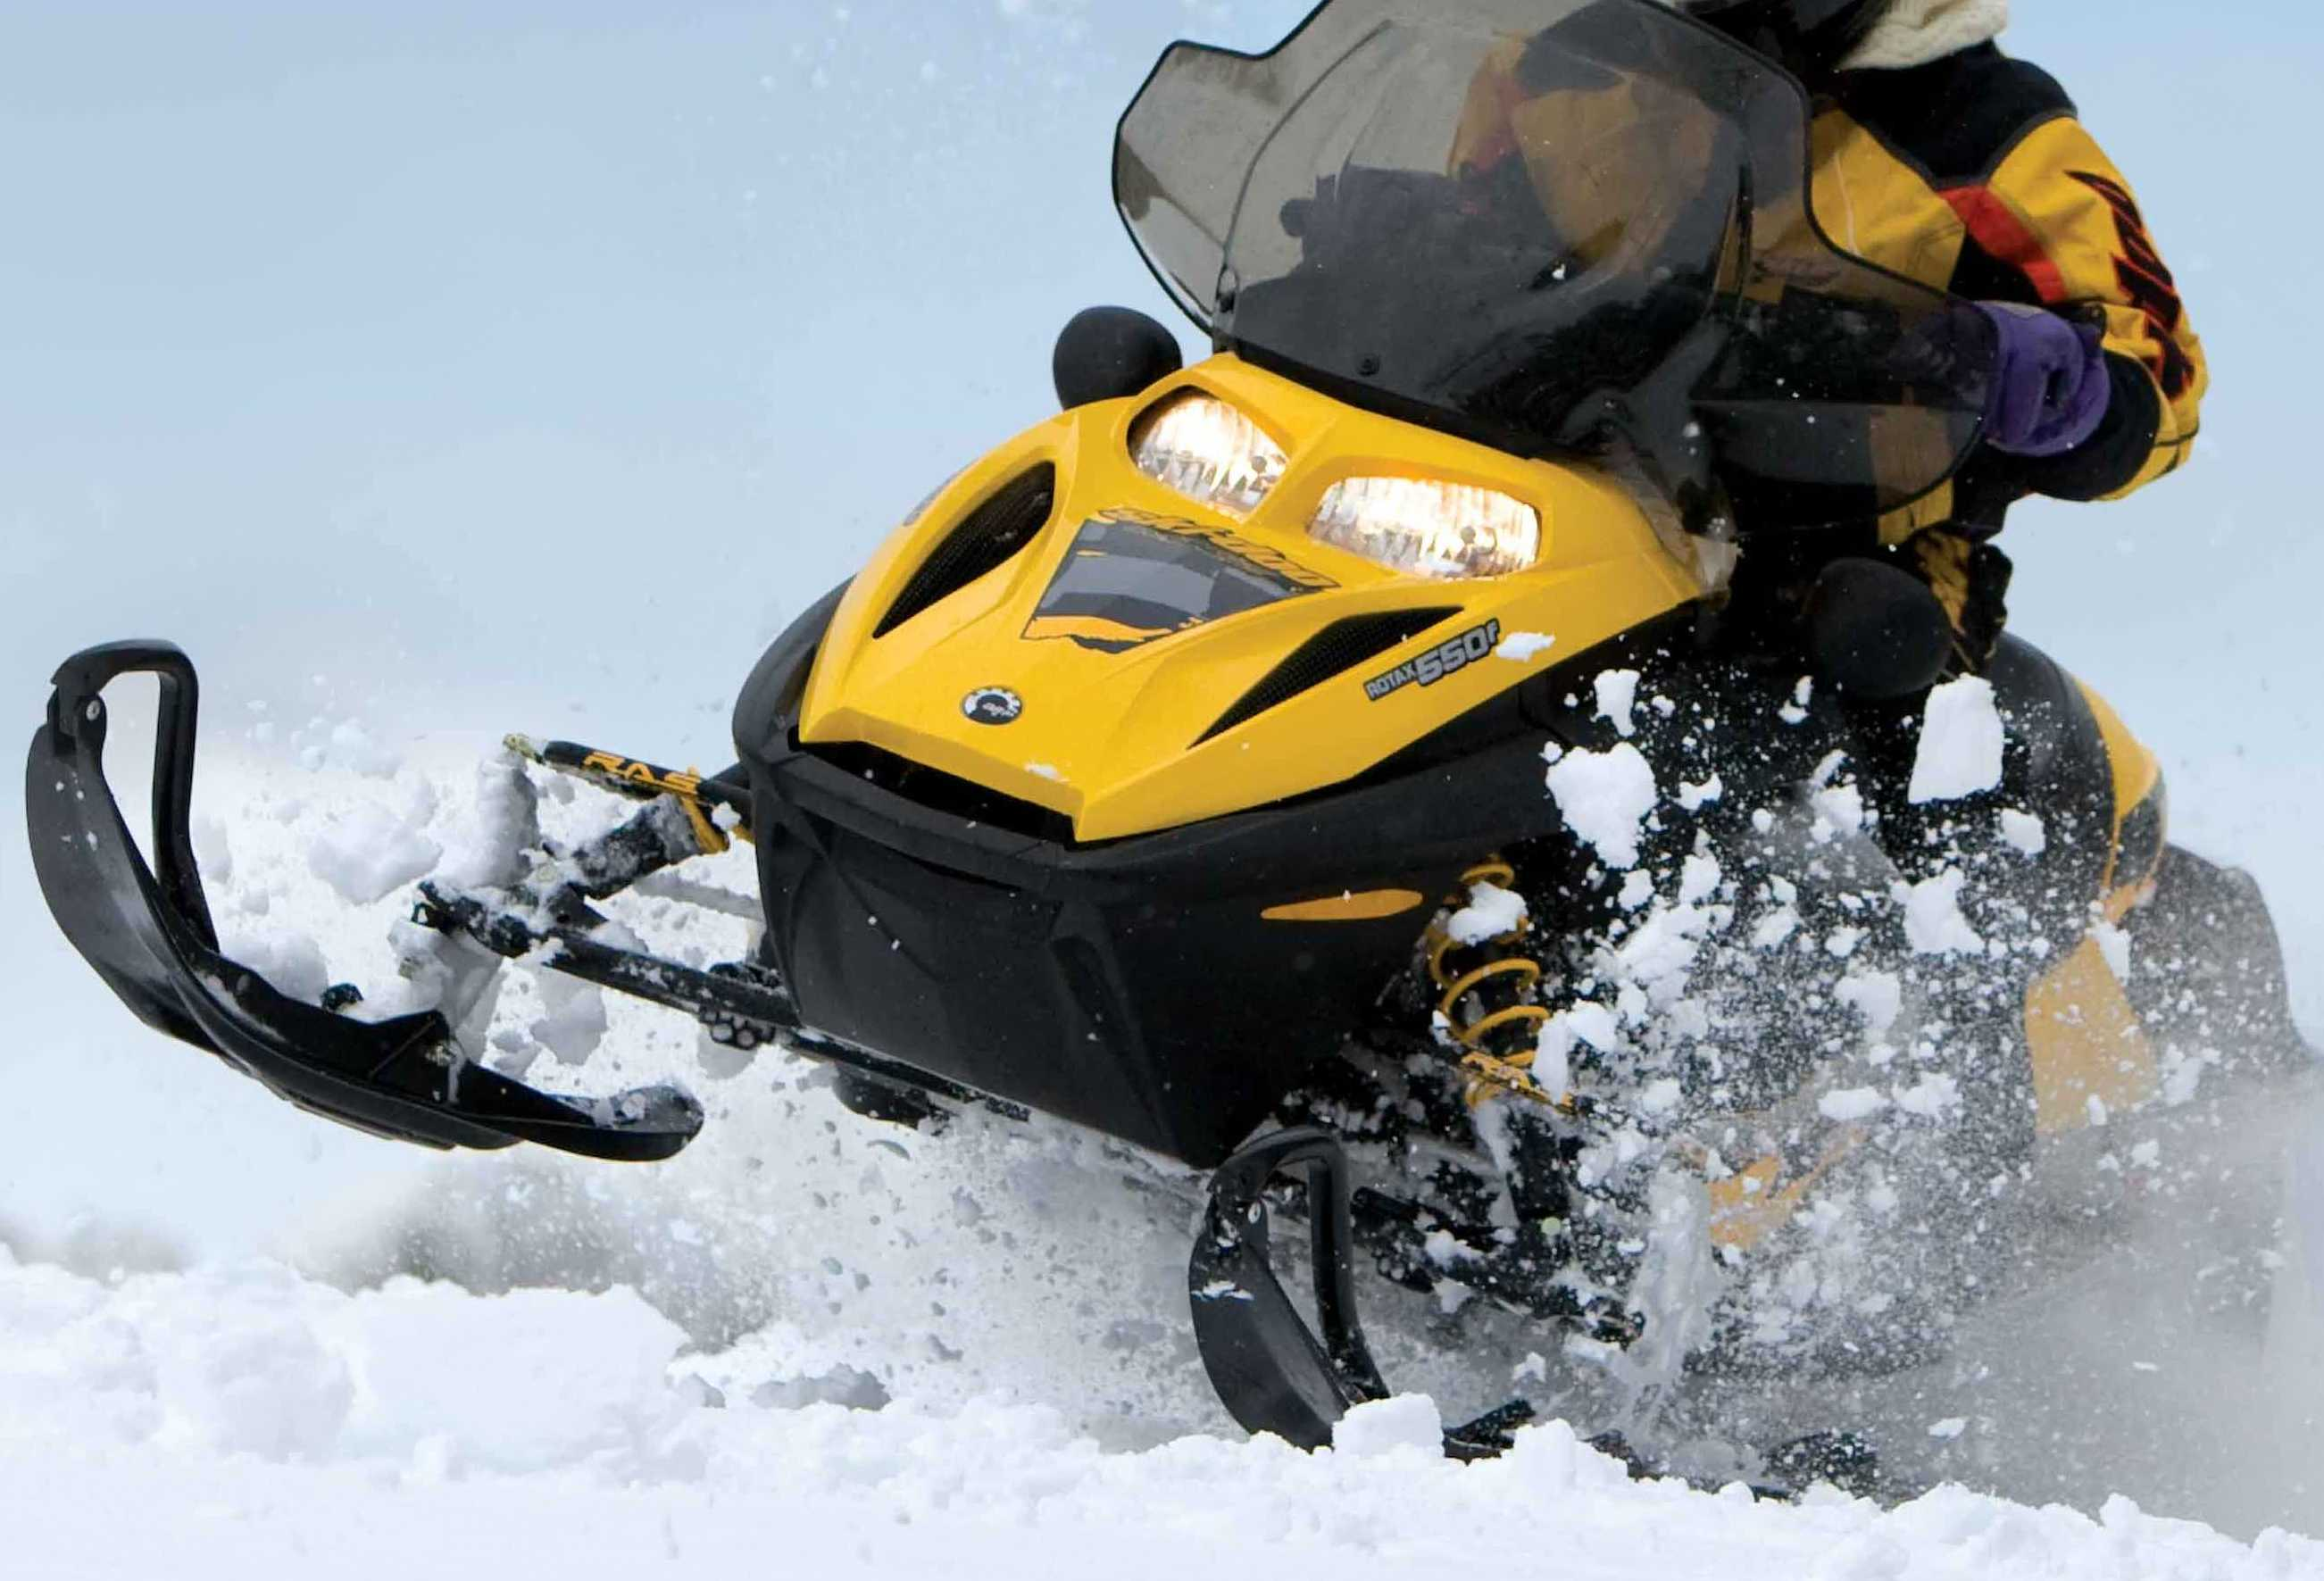 2 killed in head-on collision between snowmobiles in Upper Peninsula